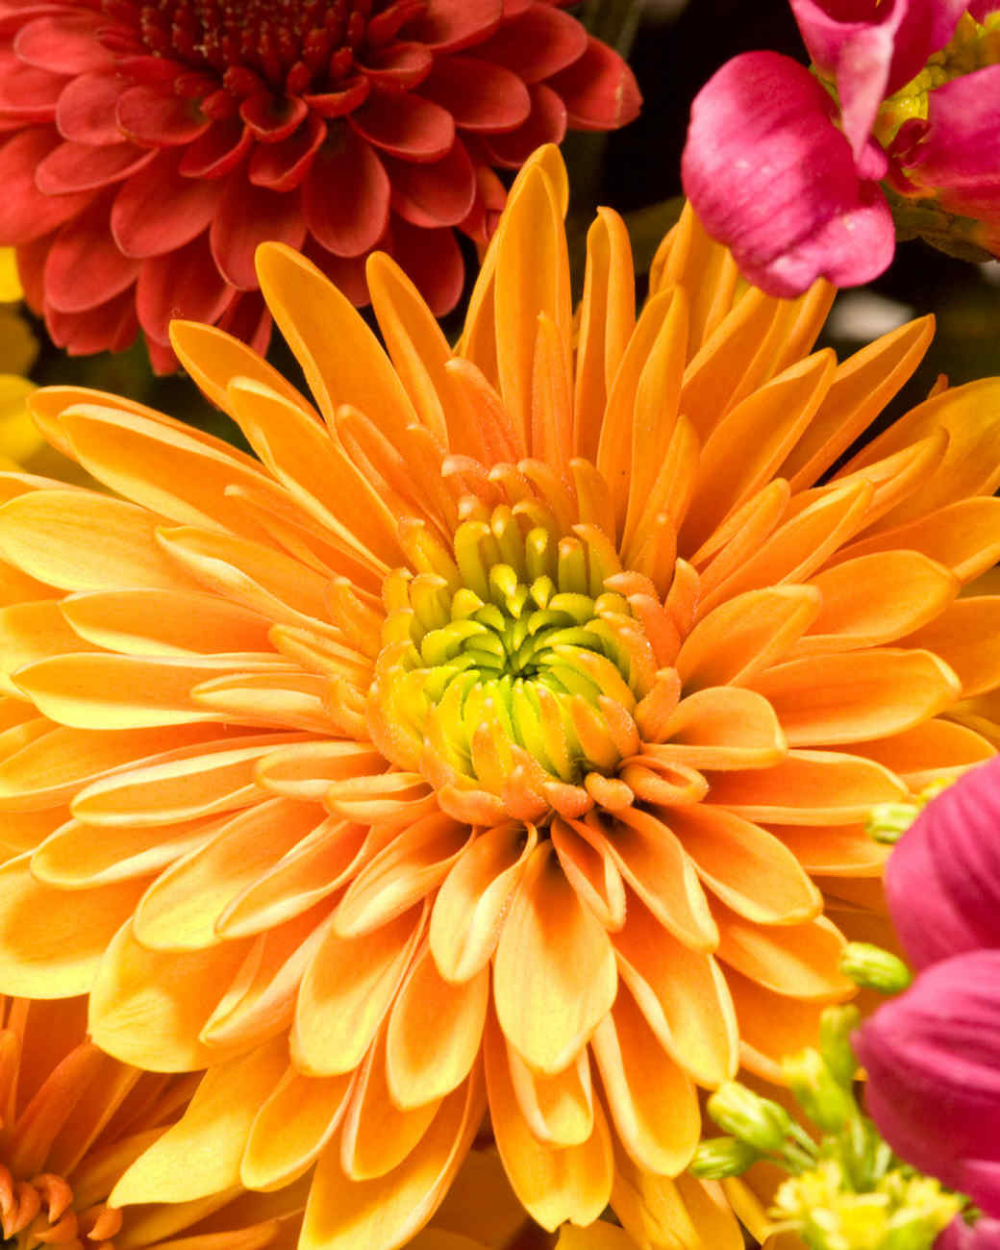 Your Ultimate Guide To Flowering Perennials Which Popular Plants Bloom When Chrysanthemum Flower Yellow Chrysanthemum Flowers Perennials